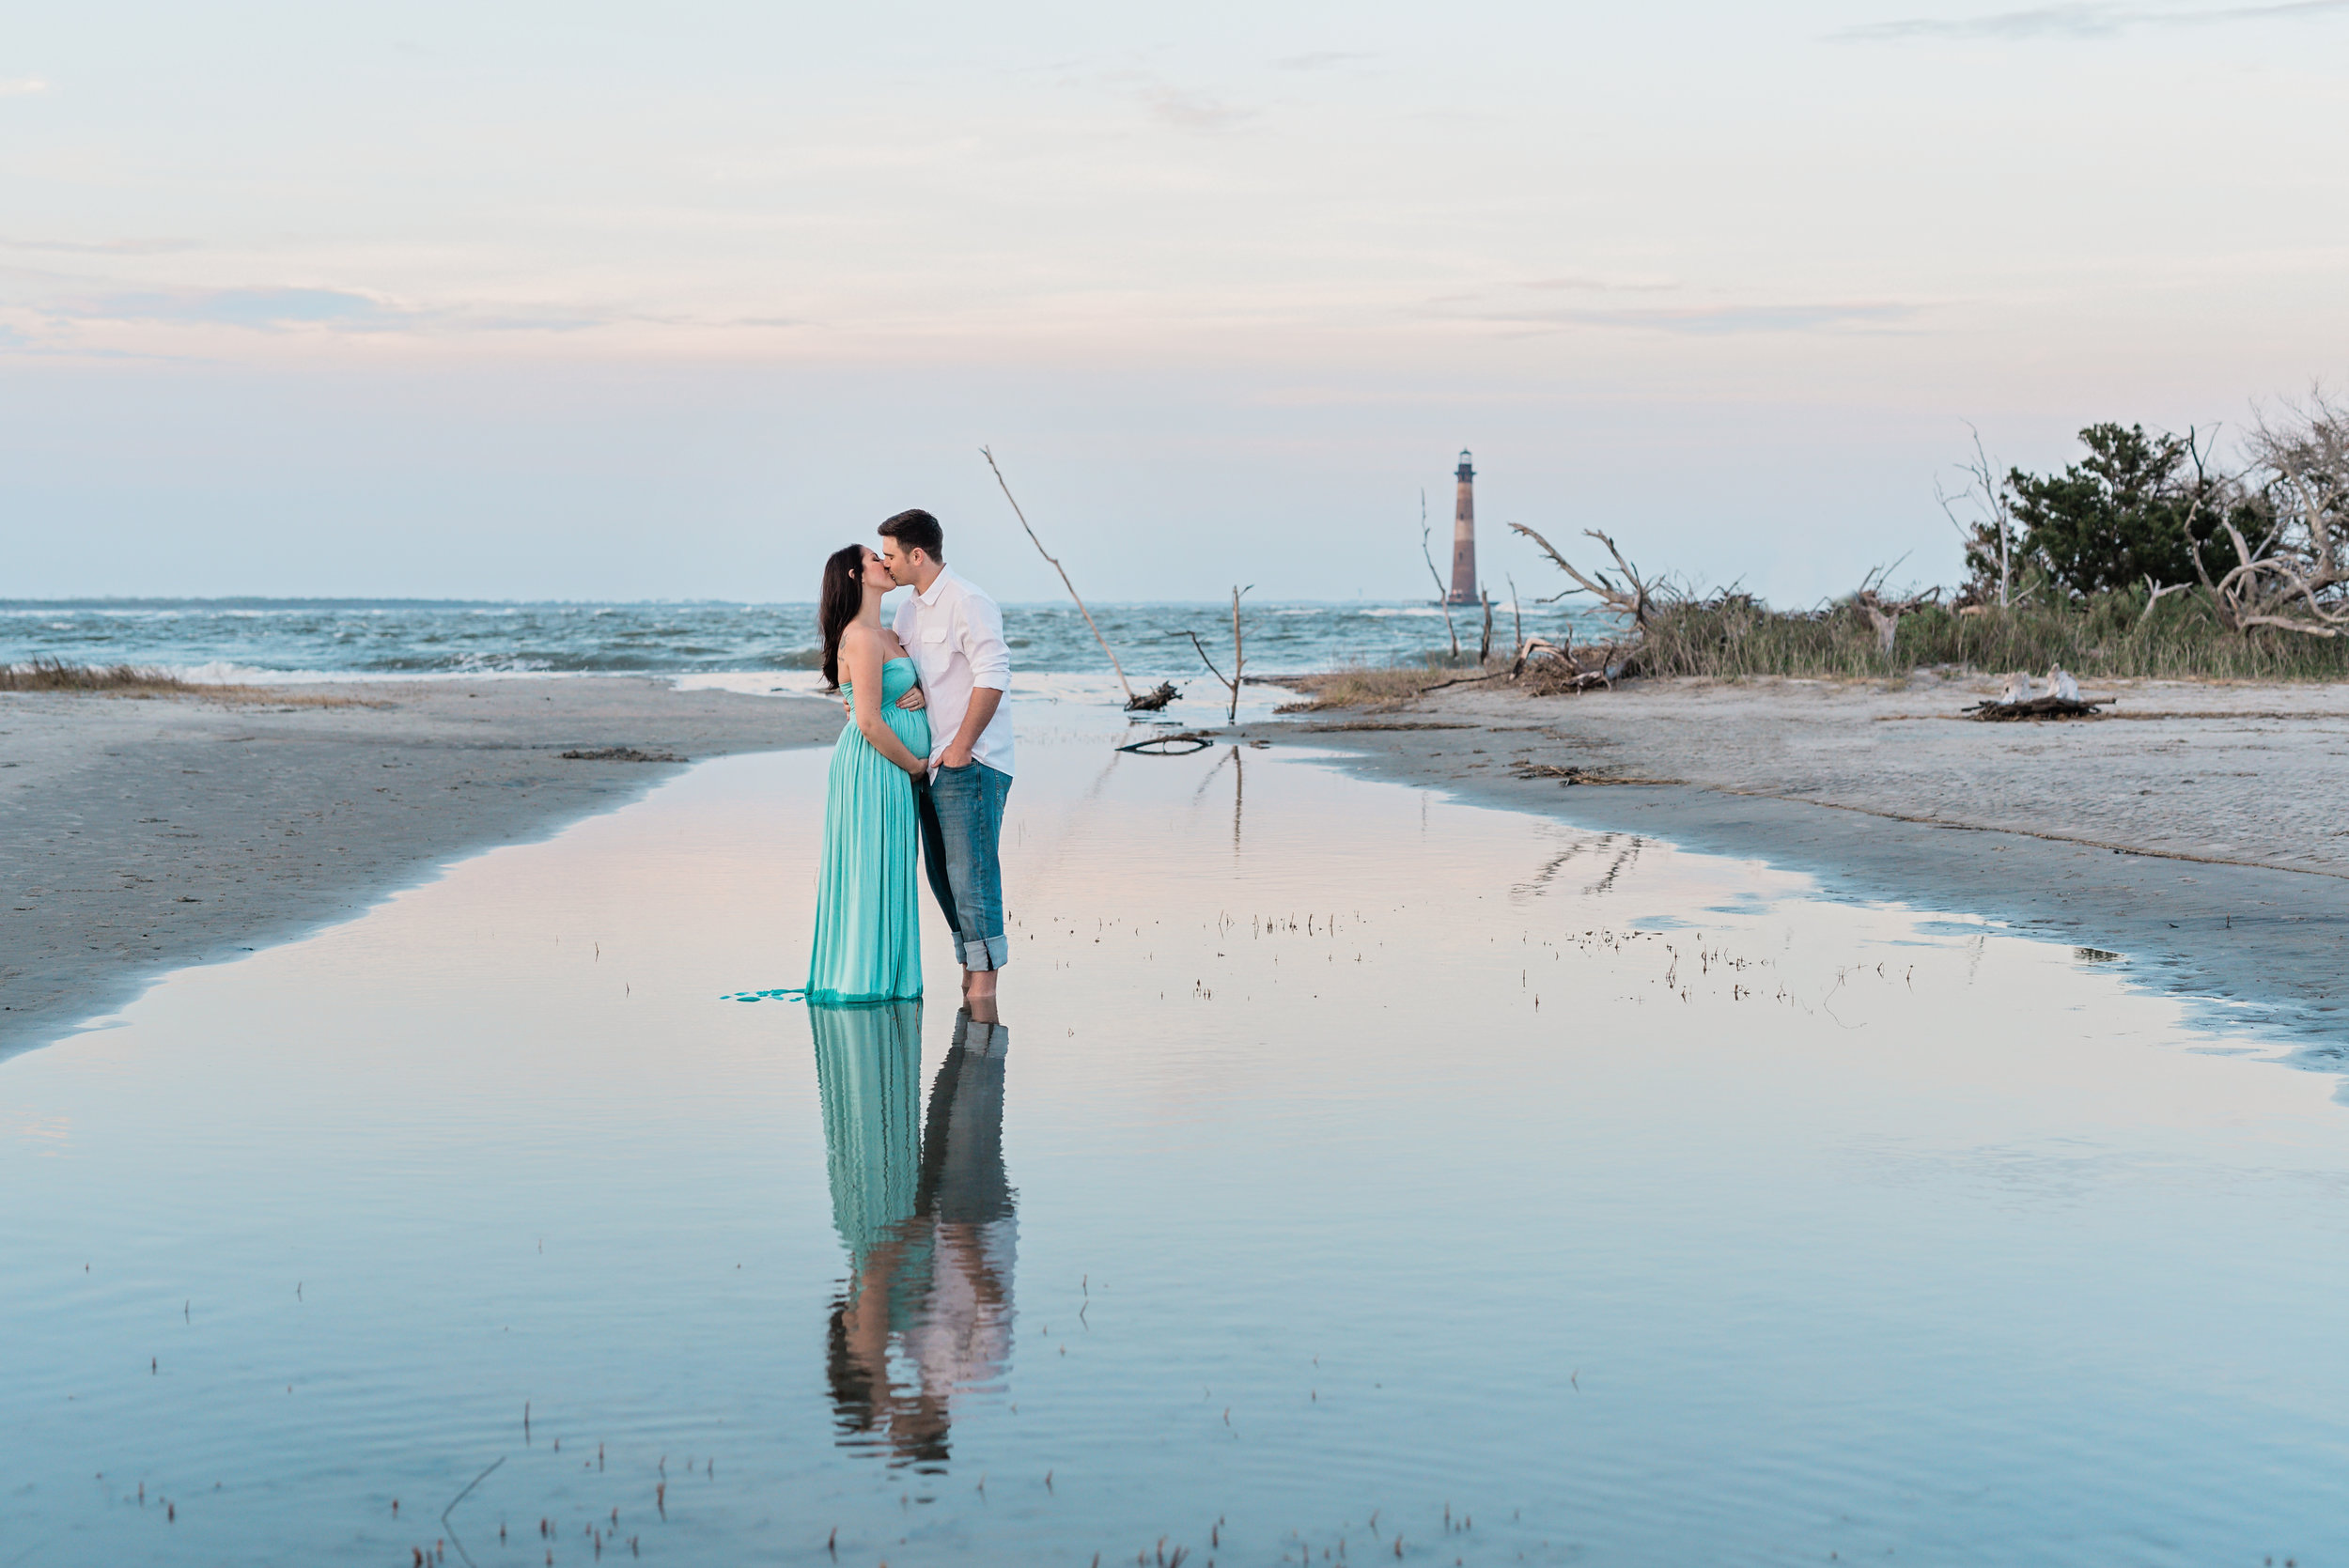 Folly-Beach-Maternity-Photographer-Following-Seas-Photography-2026 copy.jpg